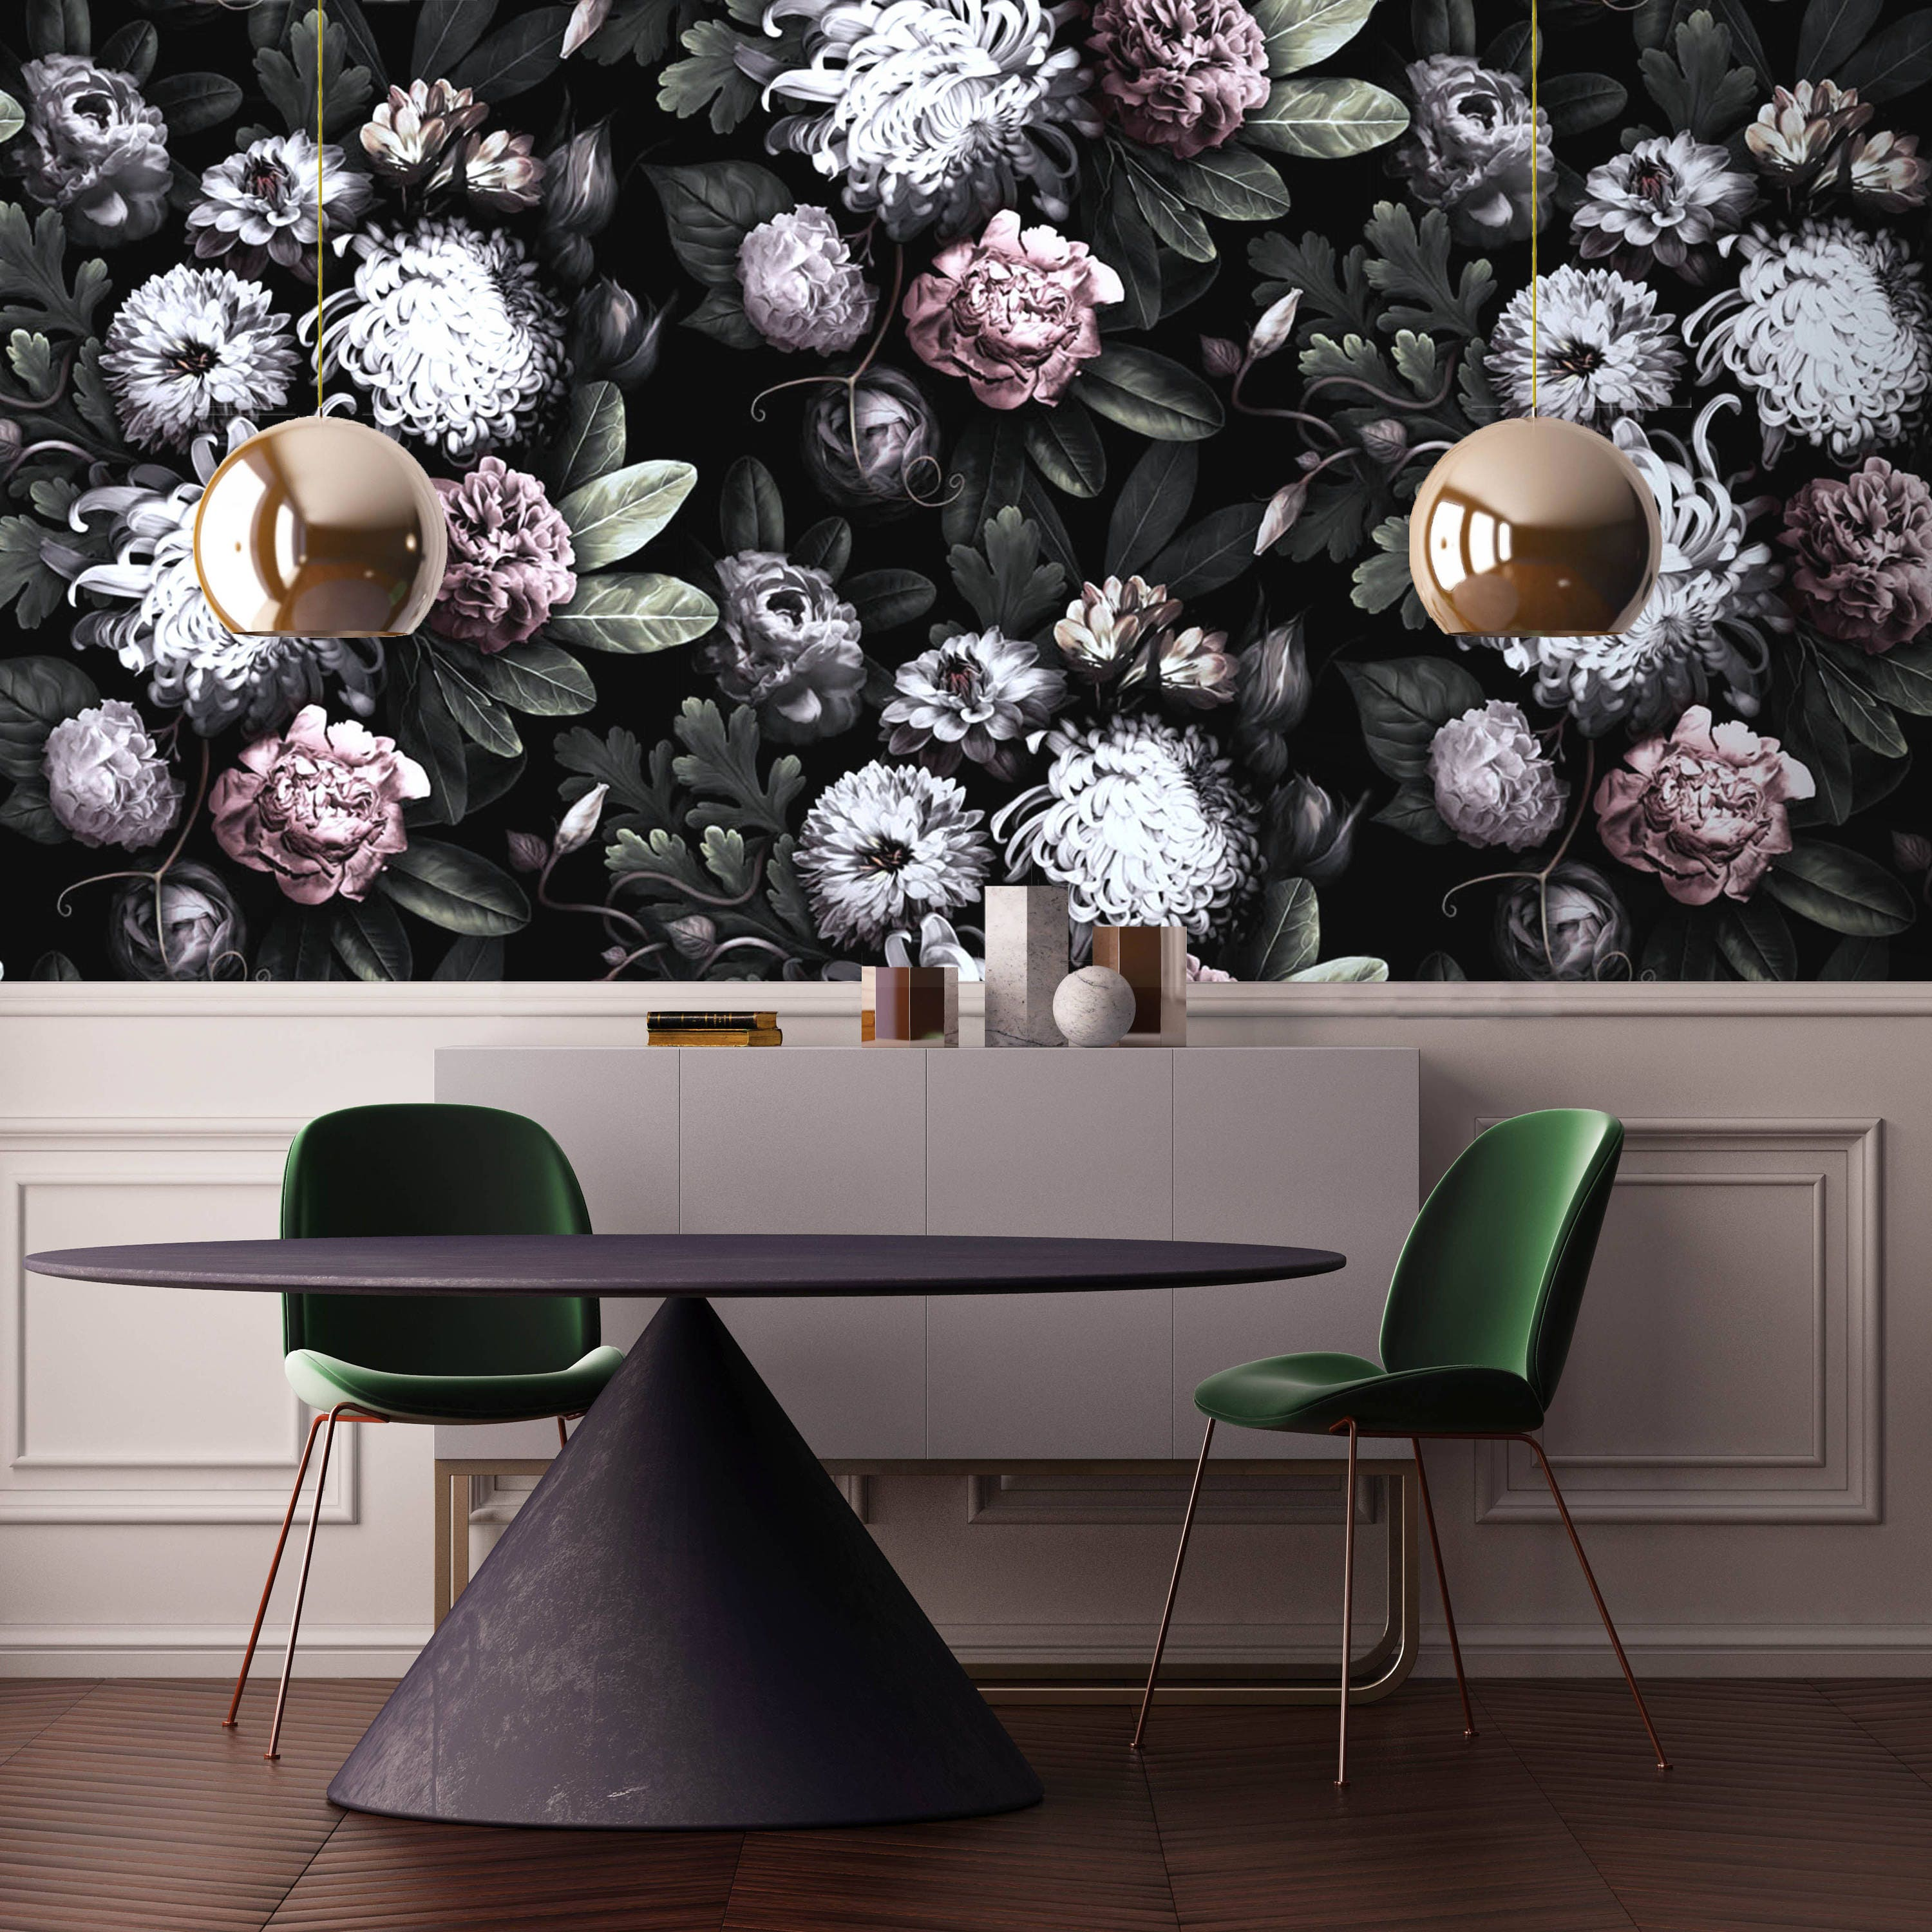 Dark Floral Wallpaper Peony Wallpaper Black Floral